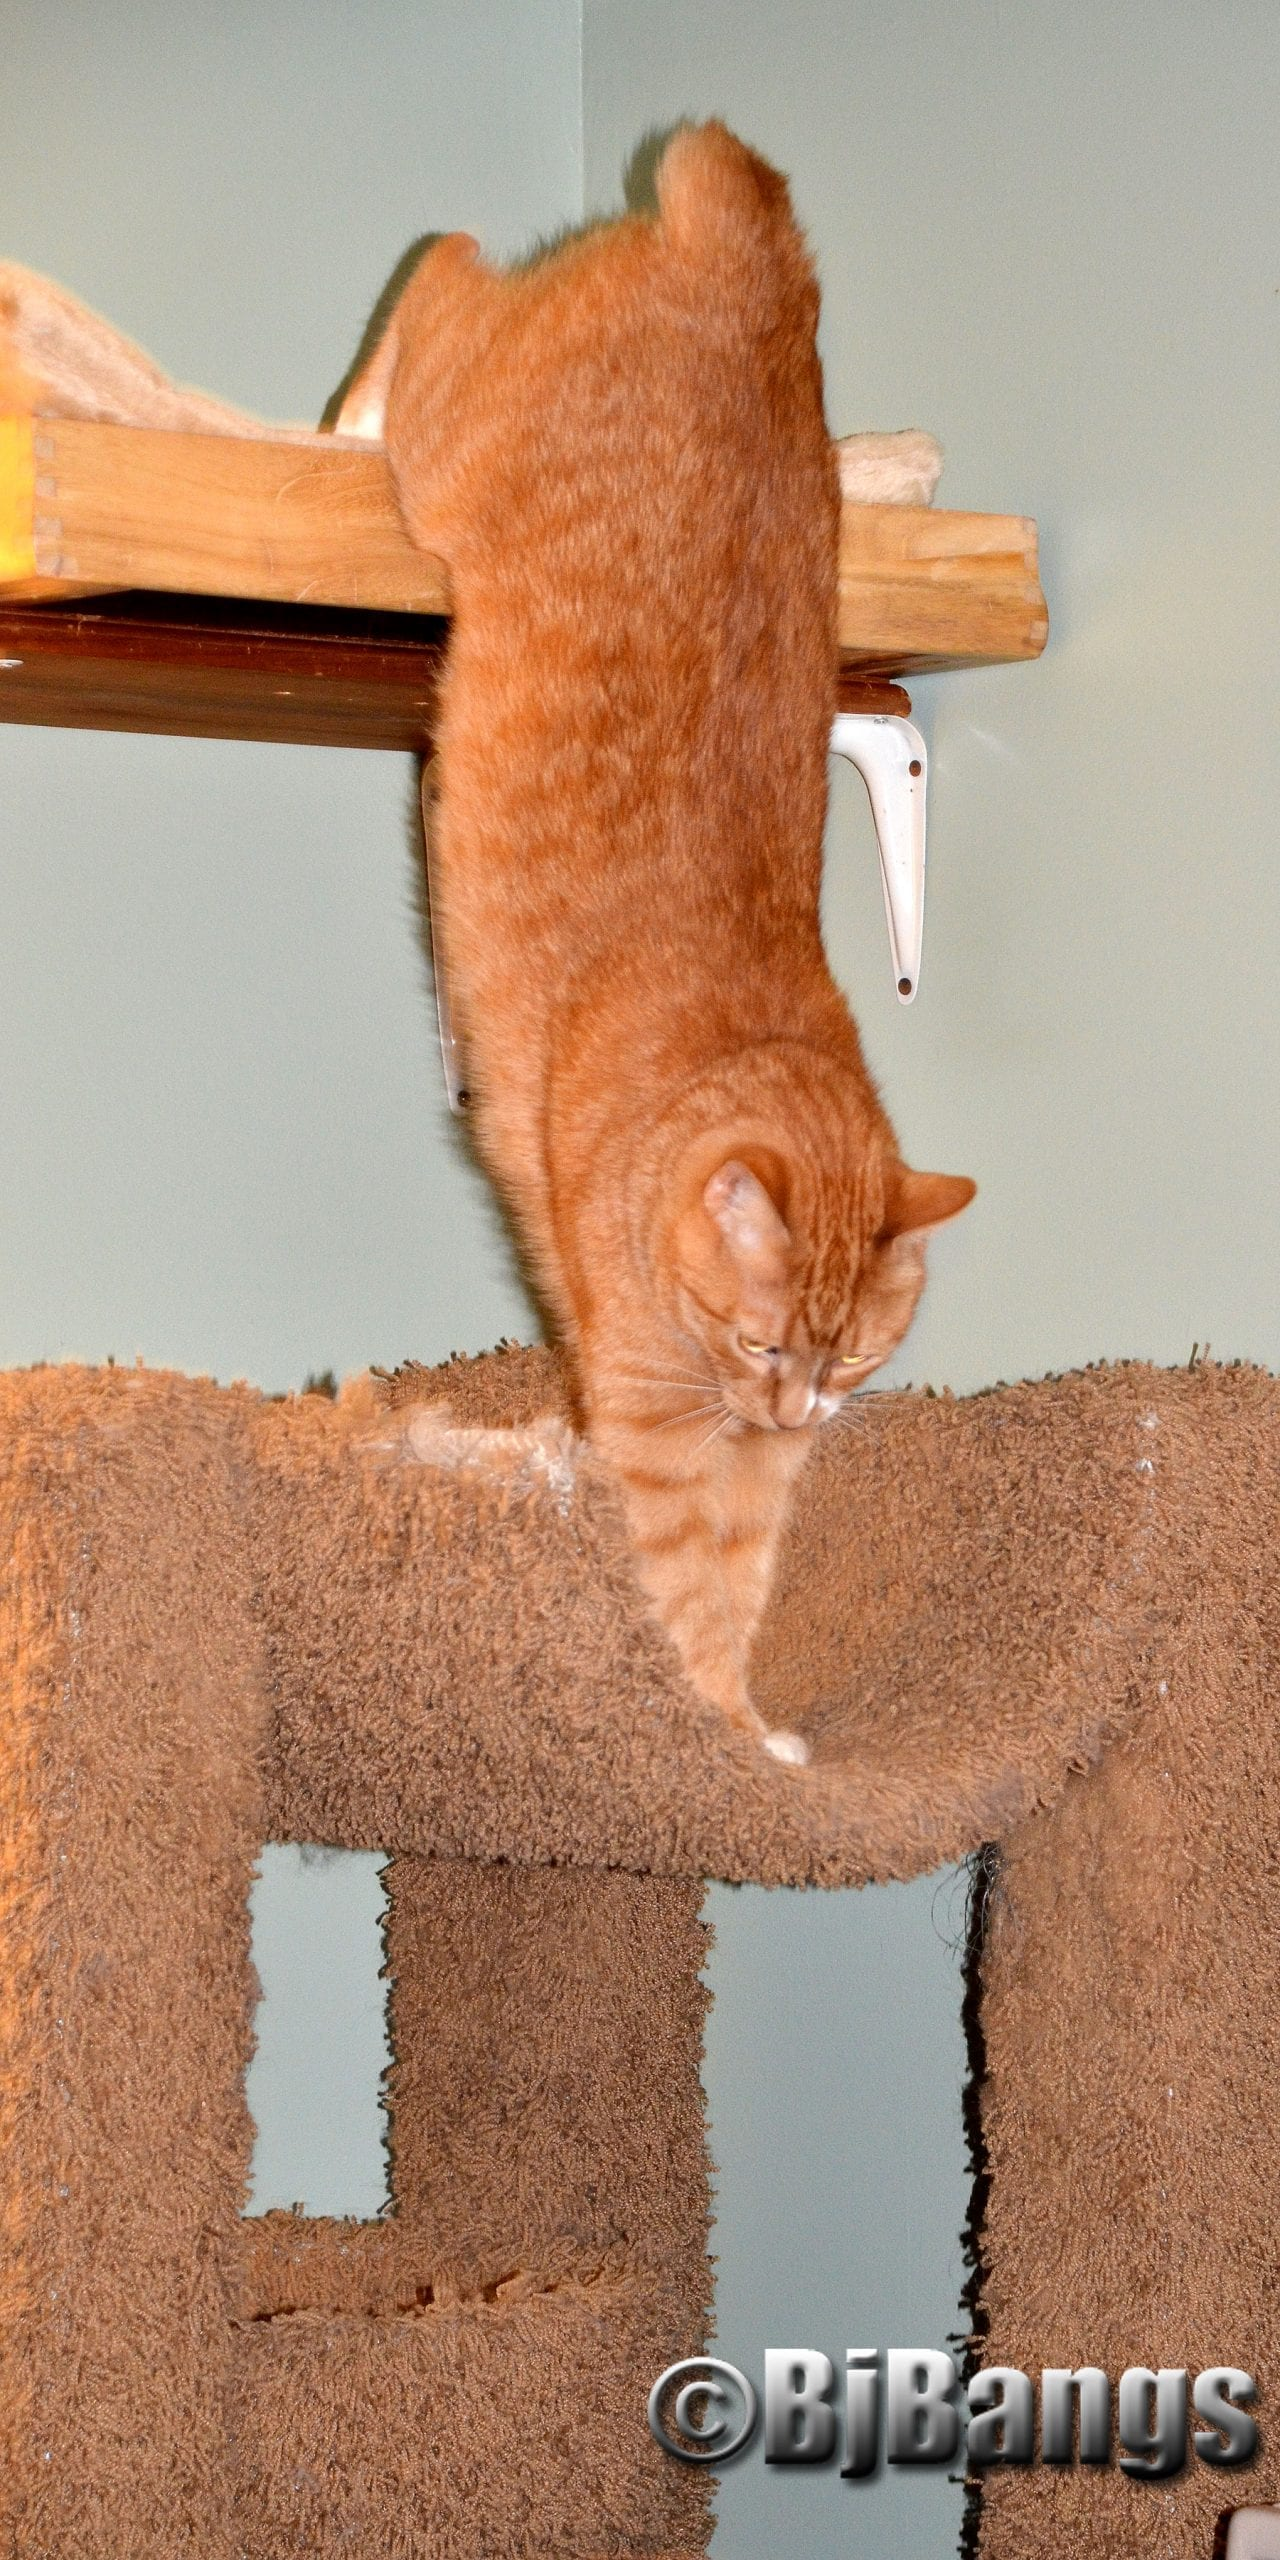 Cat says, Time to get down to the kitty bed, a little closer to my kitty friends.